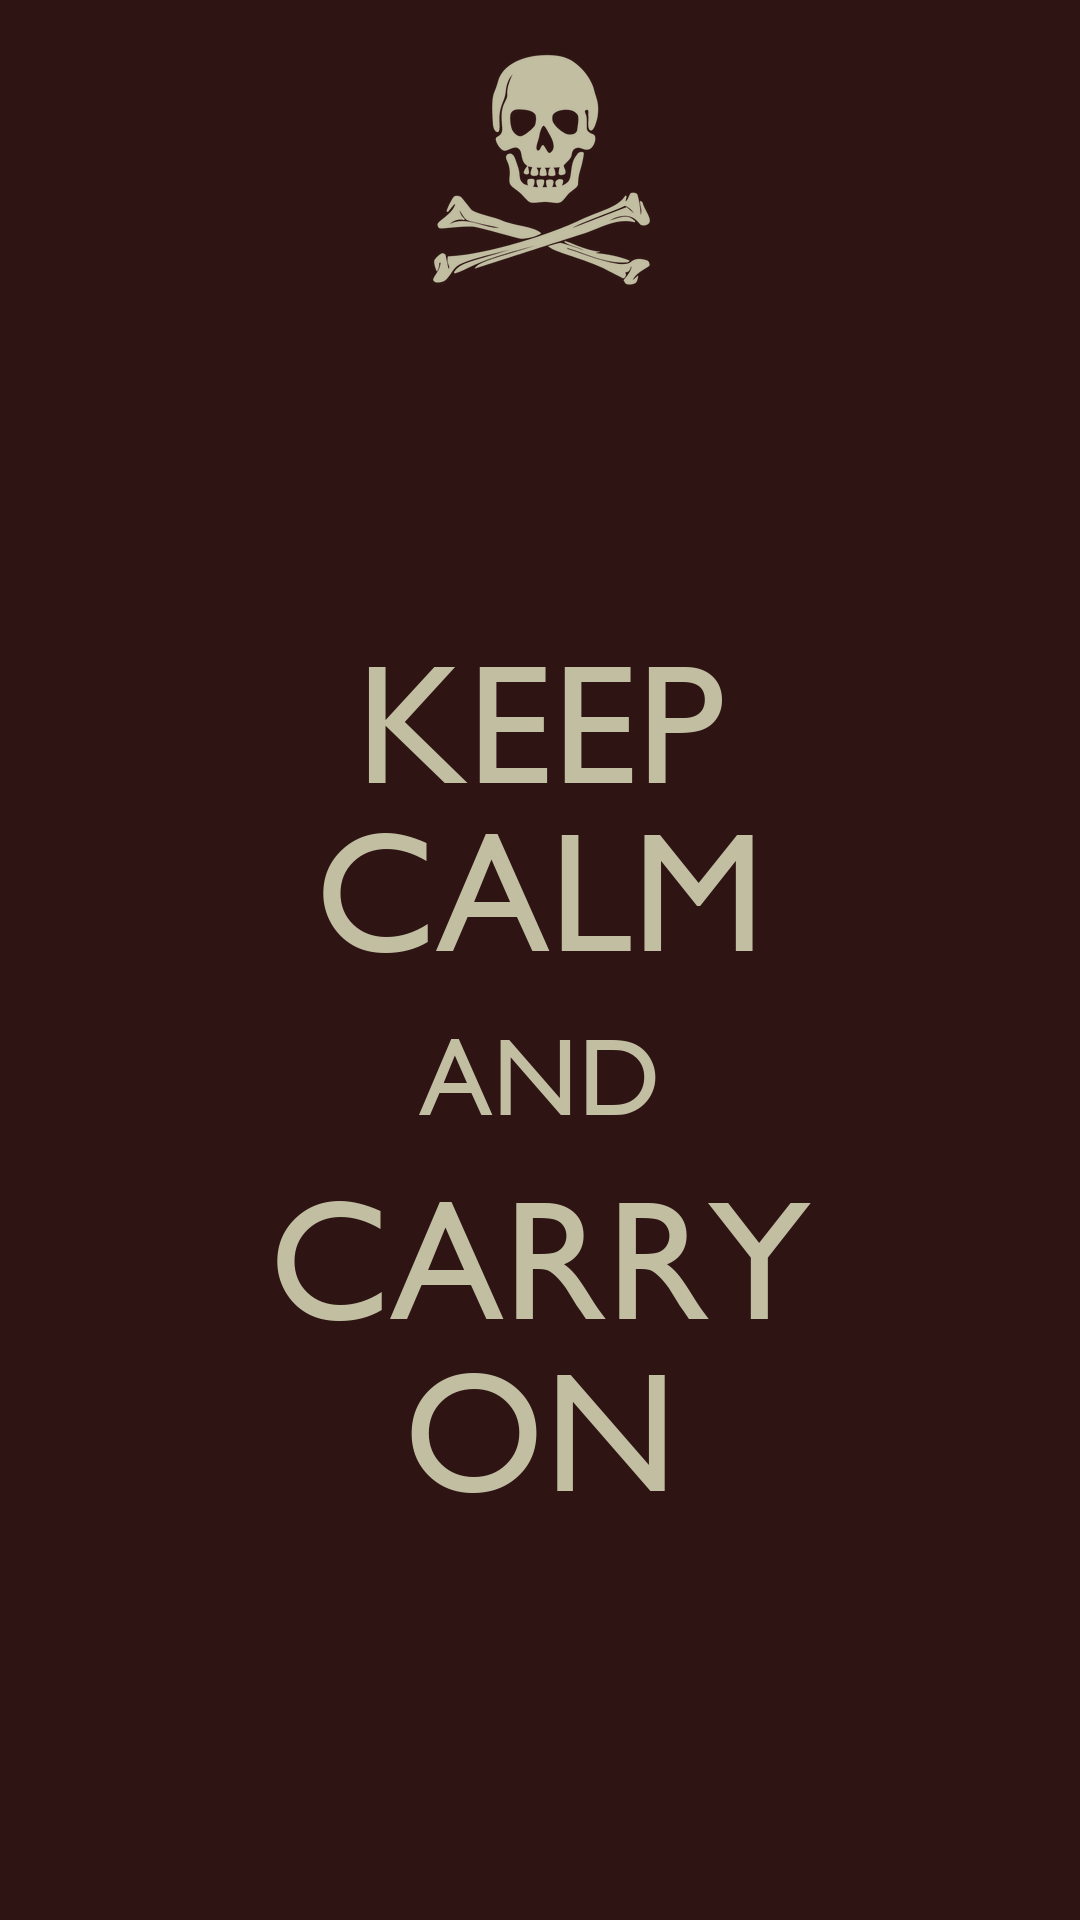 Keep Calm and Carry On Poster Generator